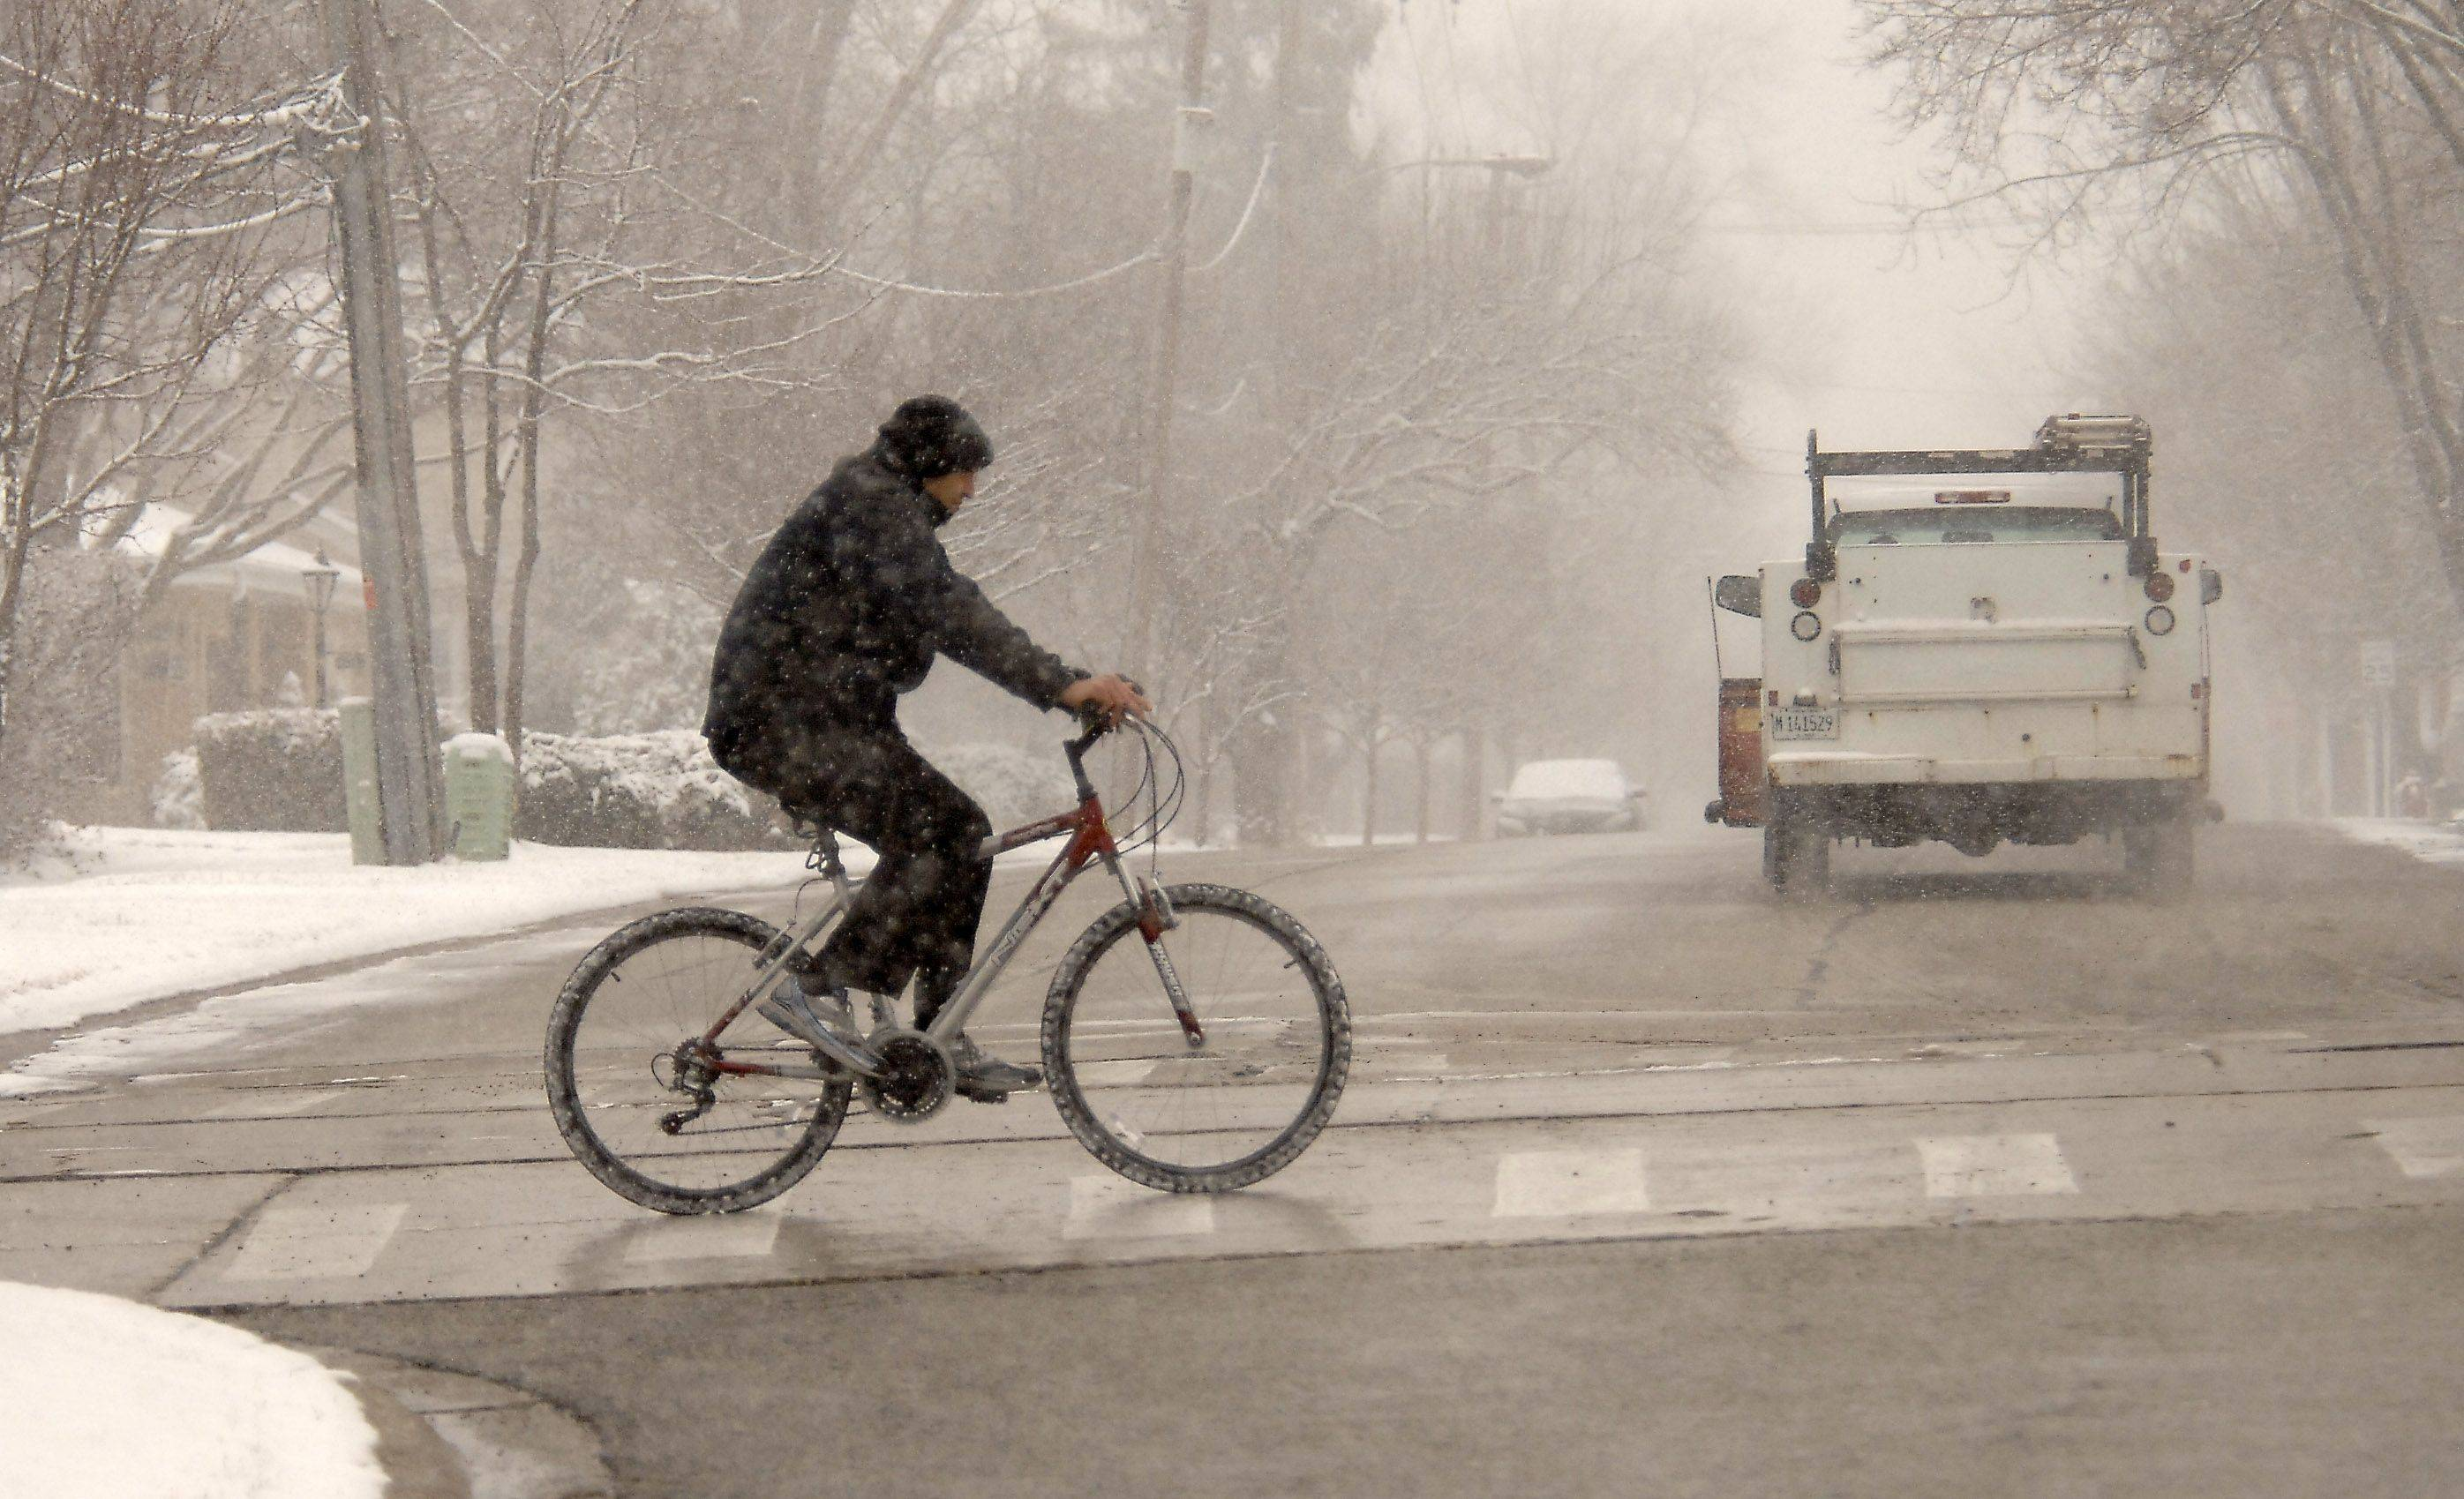 Roads remained clear enough for cyclists along Campbell Street in Arlington Heights Thursday afternoon.